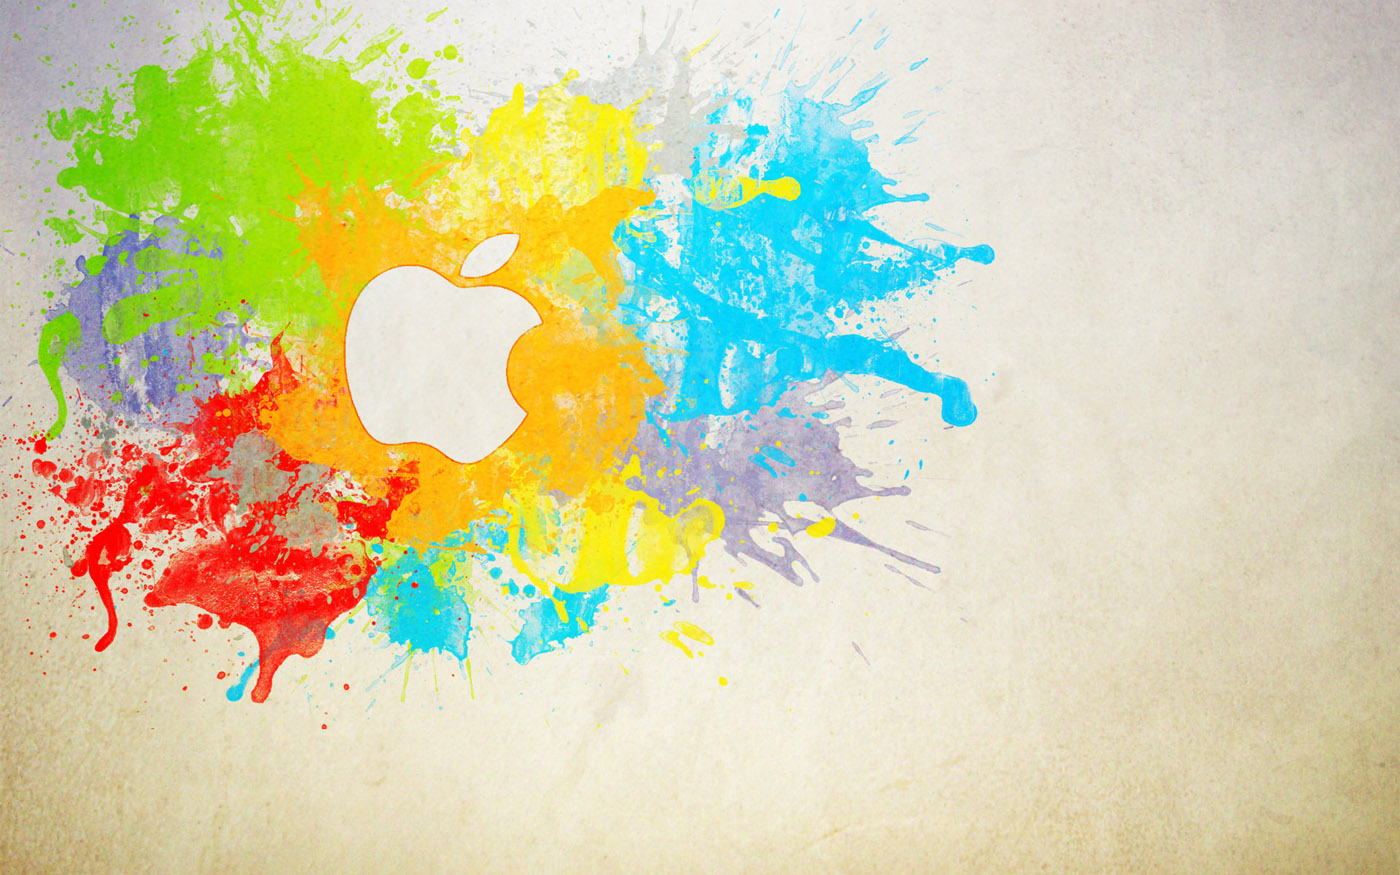 Apple wallpaper high definition 22136